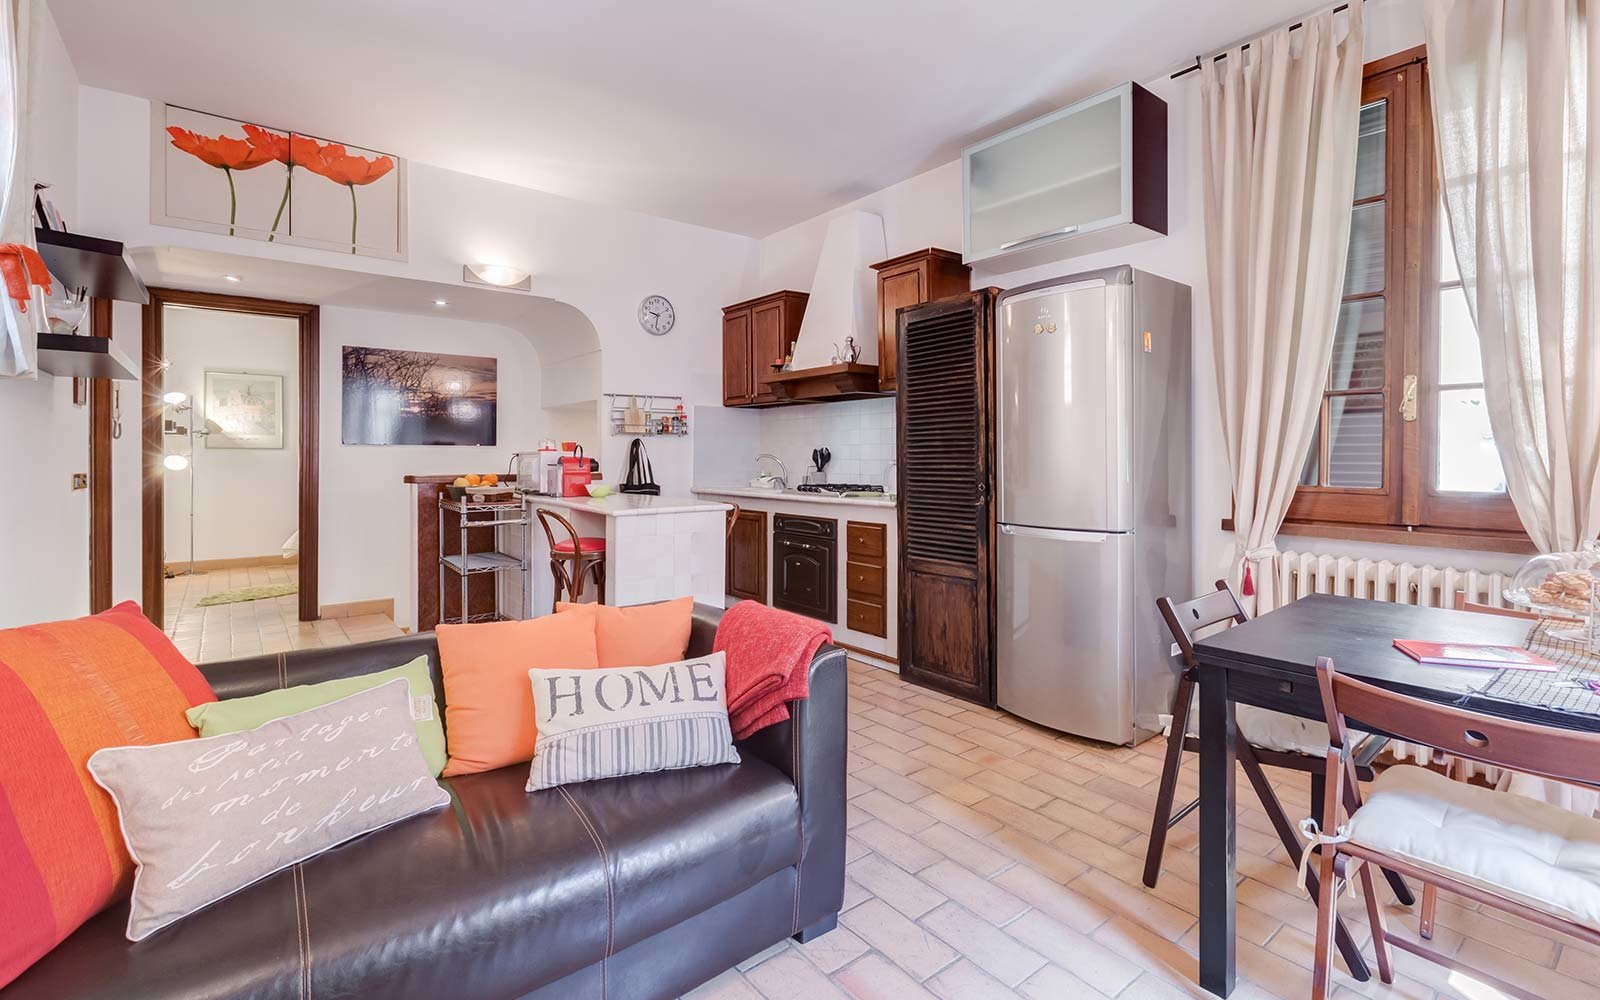 8 of the top airbnbs in rome for your money travel leisure airbnb rome italy vacation holiday rental apartment sciox Gallery